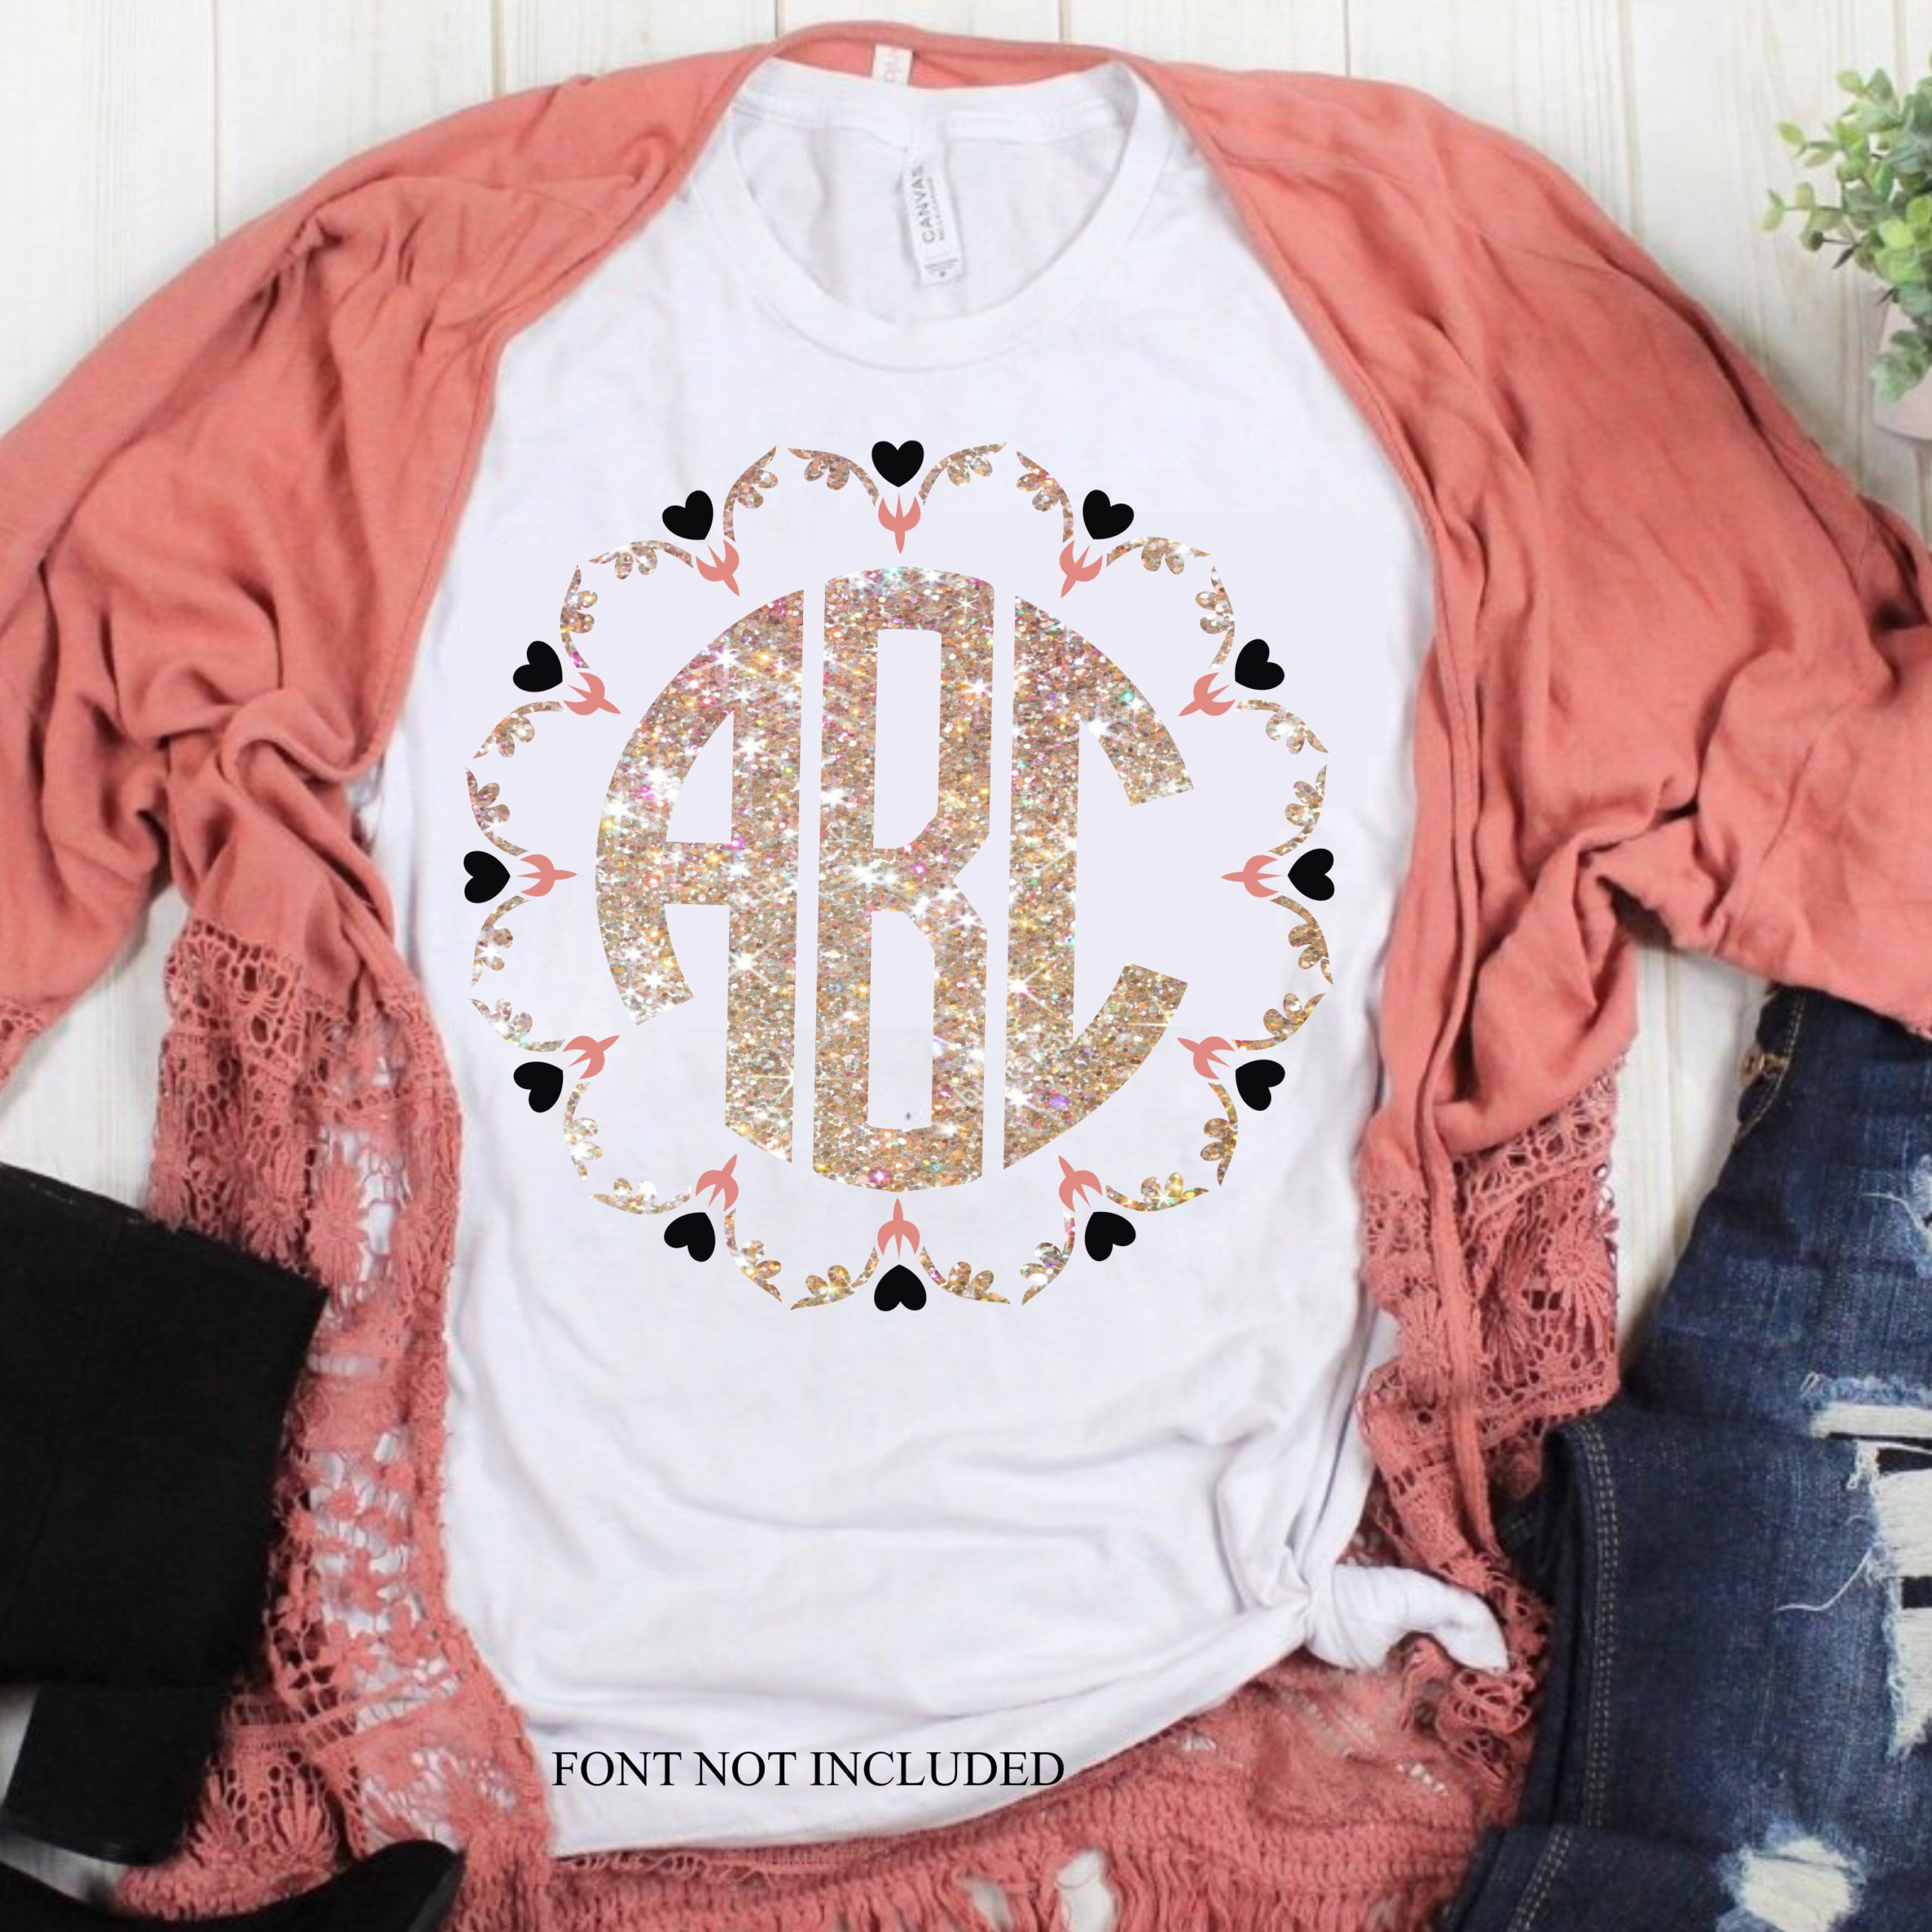 Angel Wings Heart Monogram Svg Heart Monogram Svg Eps Dxf Files For Cutting Machines Cameo Cricut Key Svg Hearts Heart Svg Svg For Cricut Svg For Cricut